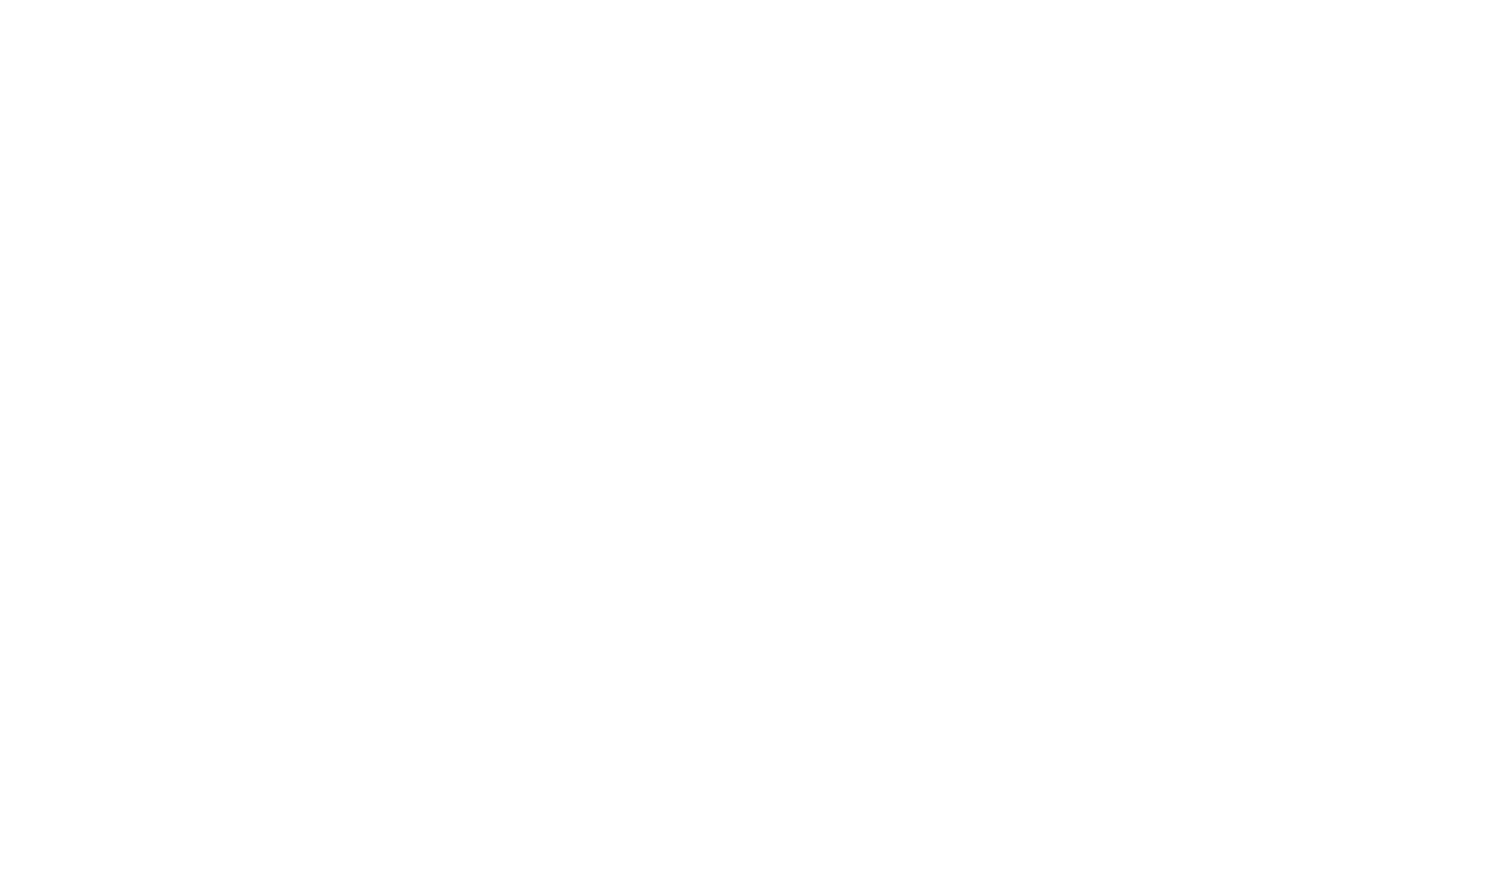 台北國際合唱音樂節 Taipei International Choral Festival